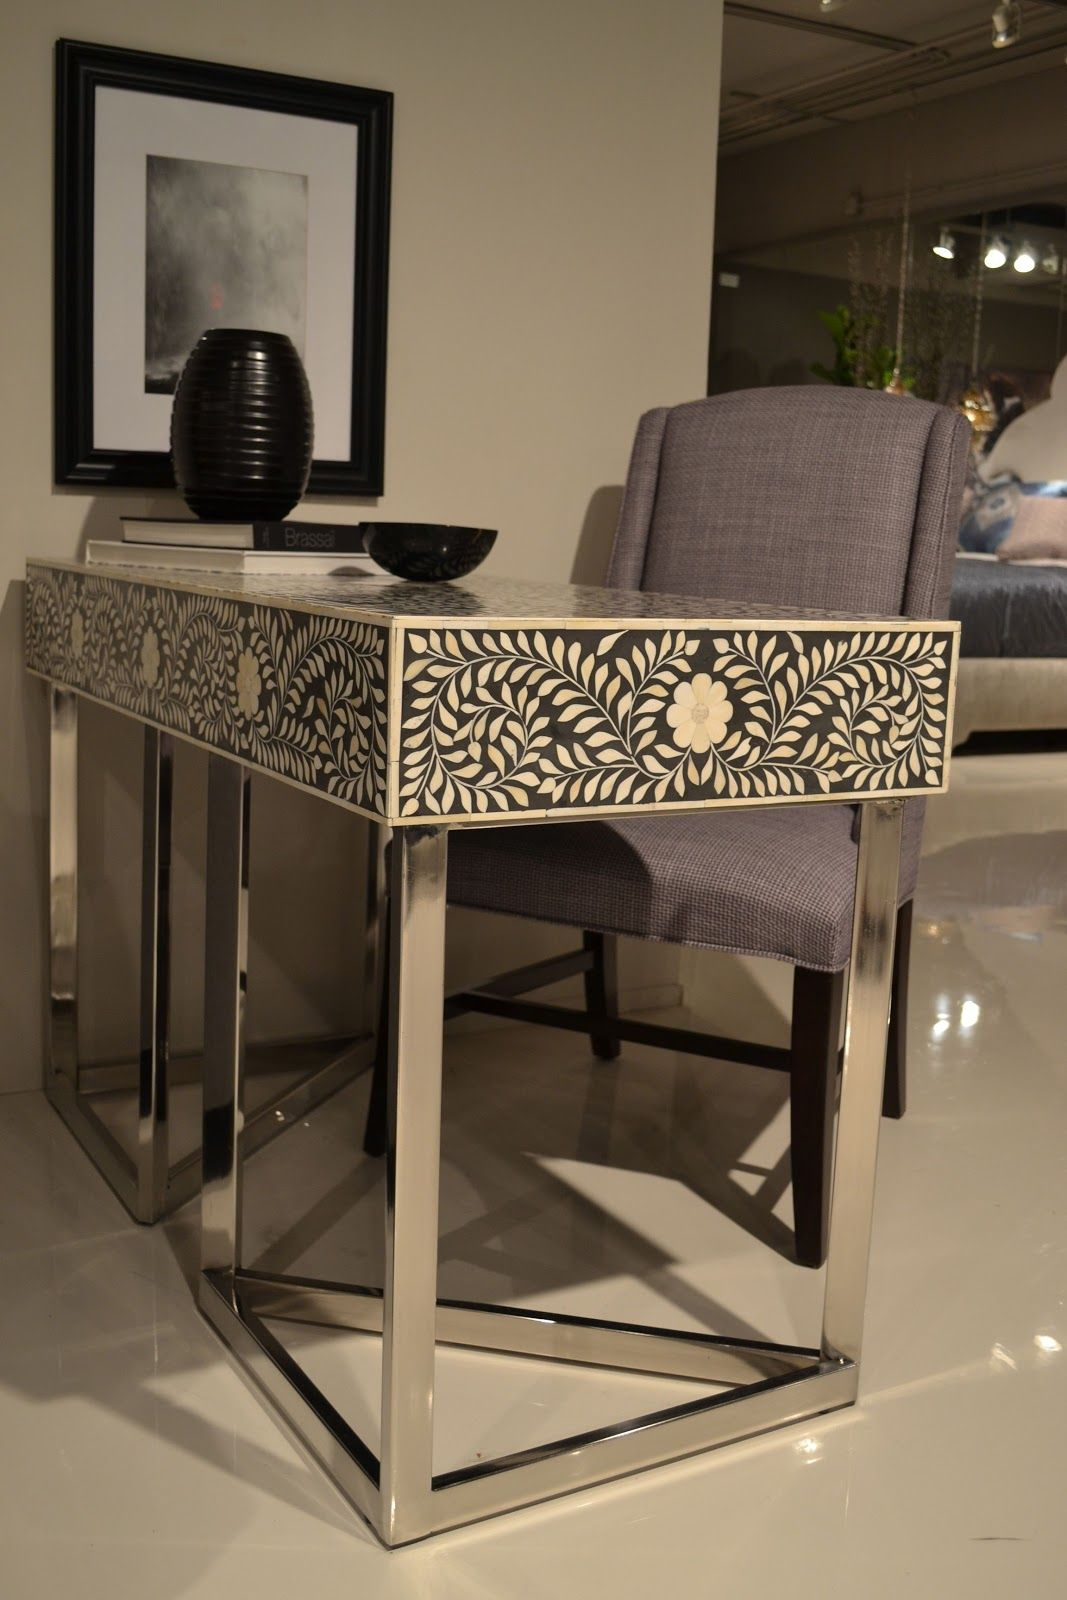 Best Cozy•Stylish•Chic Inspiring Design Decor And Fashion Bernhardt Furniture Inlaid Bone Desk 640 x 480